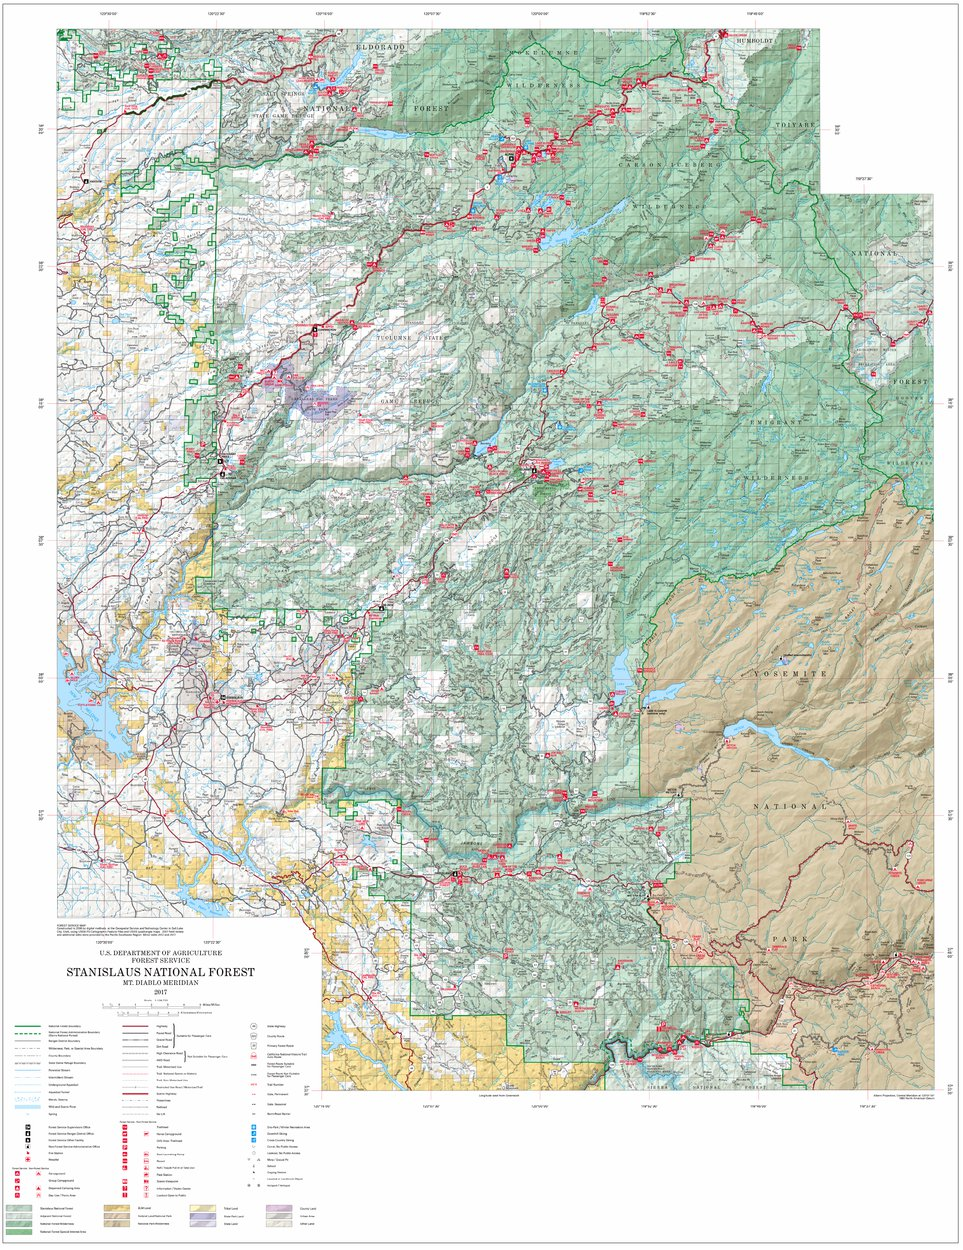 Stanislaus National Forest Visitor Map US Forest Service R5